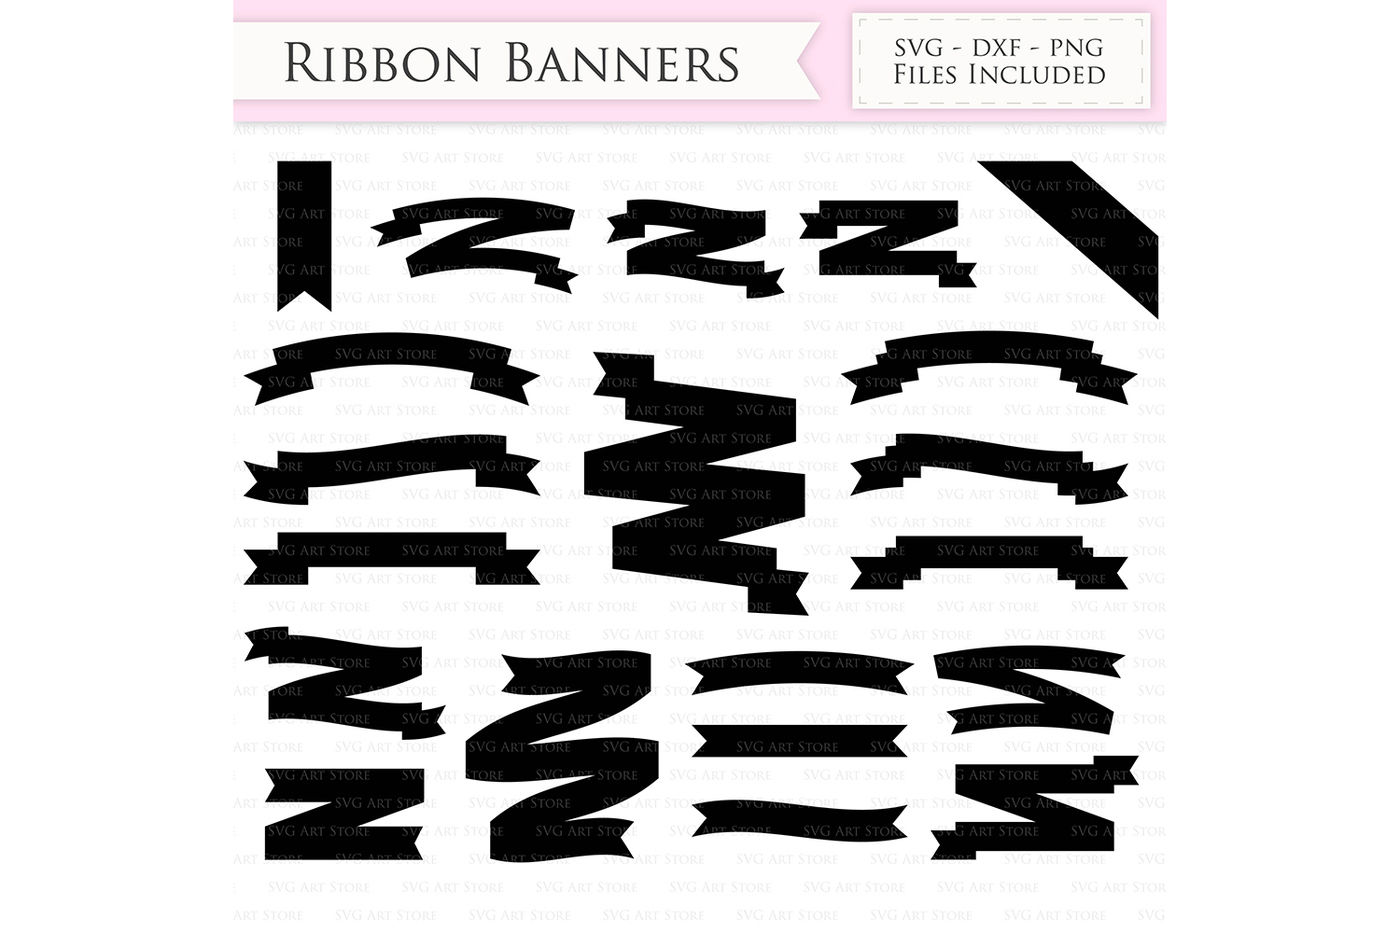 Ribbon Banners Svg Text Banners Cut Files By Svgartstore